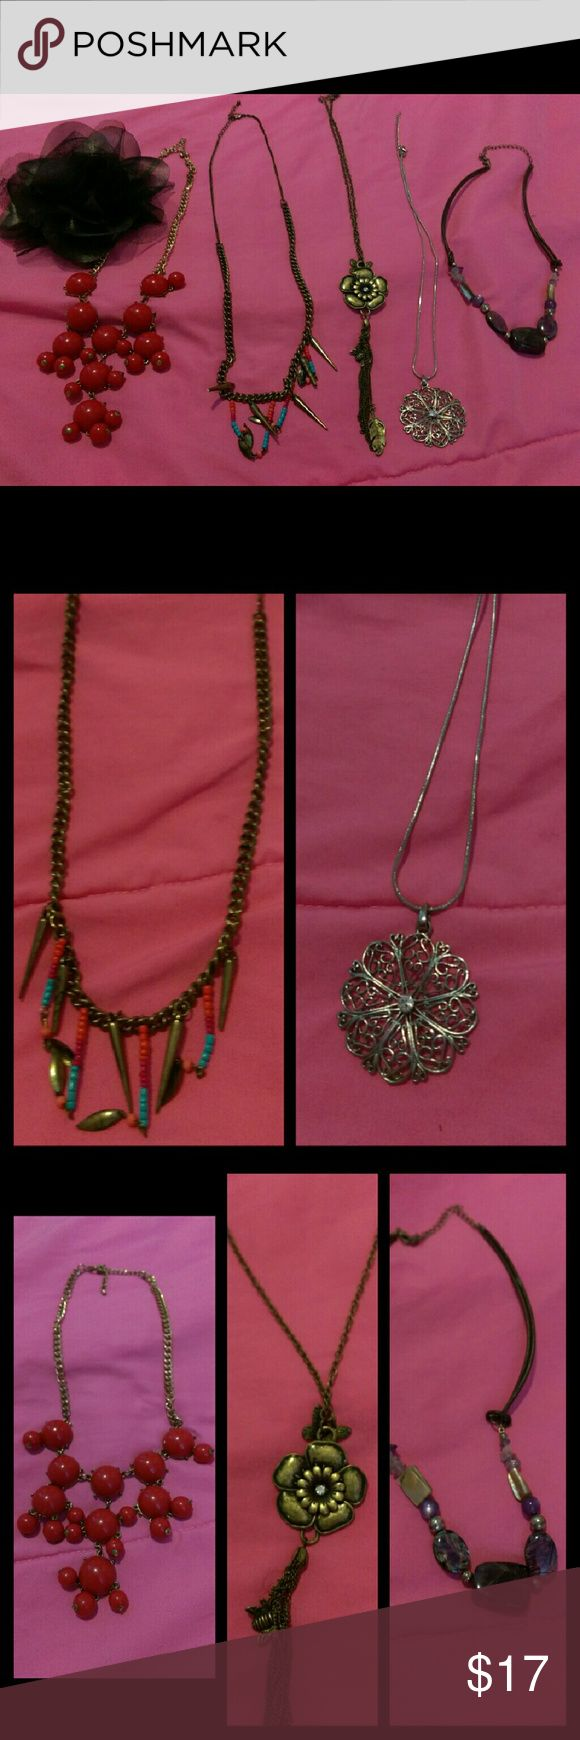 Jewelry Bundle This is a great bundle! Great addition to your closet! Price is negotiable  Contents: Black flower hair pin - great condition Red bubble necklace - good condition  Bronze flower with tassel necklace - great condition Silver flower necklace - excellent condition  Purple stone necklace - perfect condition Jewelry Necklaces